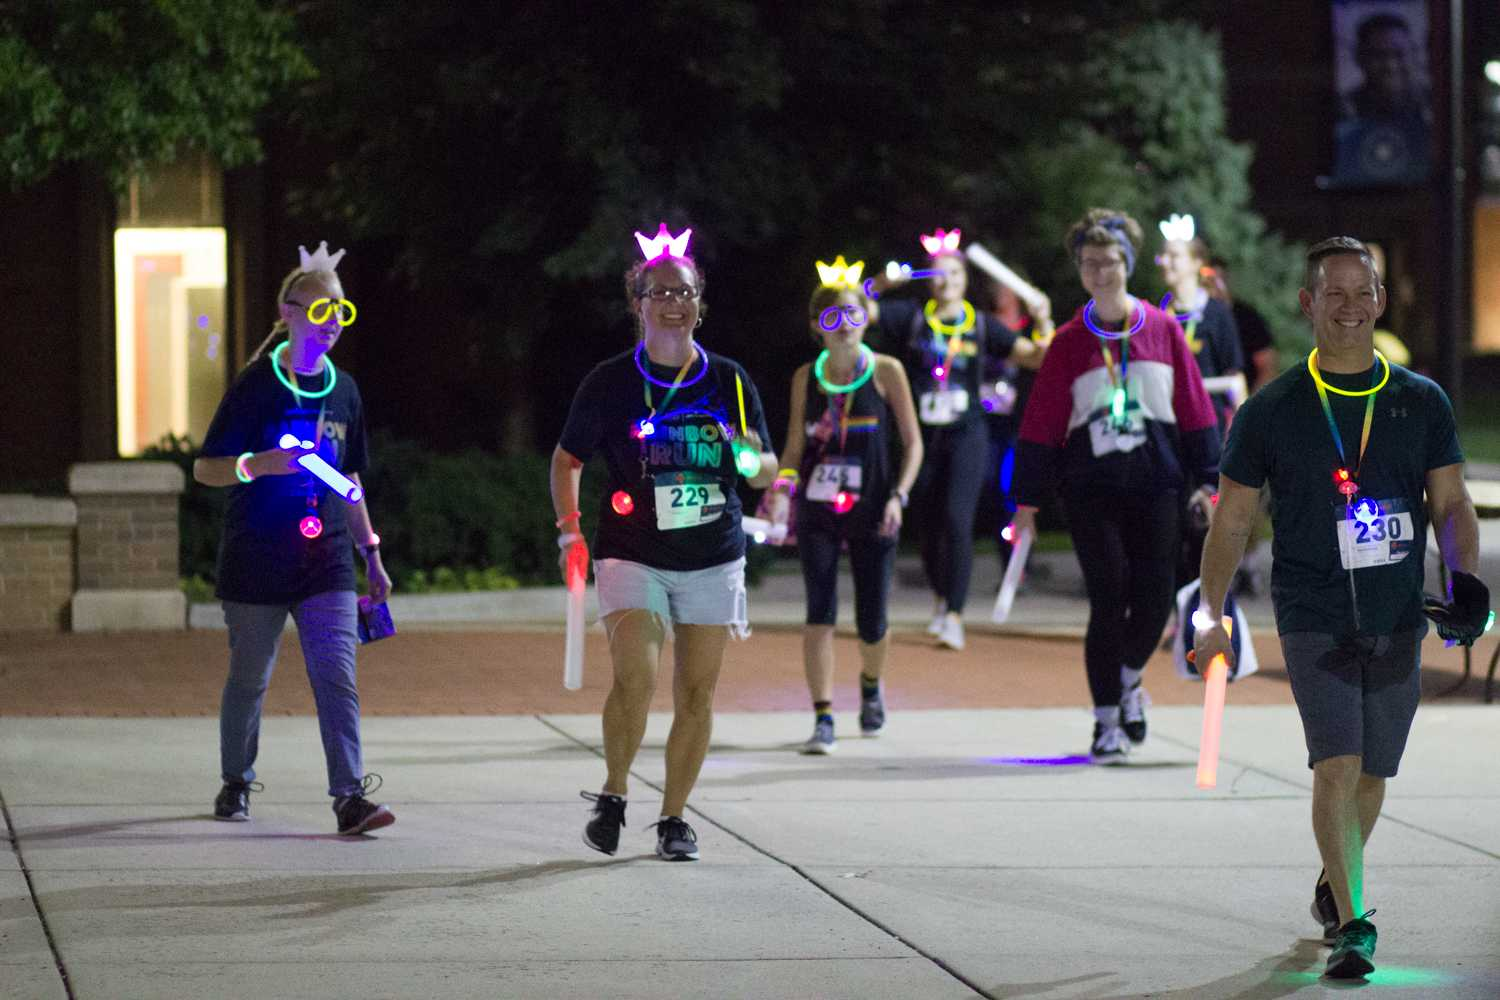 Participants of the Rainbow Run 5k smile as they finish the race outside the Kent State Student Center on Friday, Sept. 21, 2018. Not only did Kent students participate in the race, but families and friends of those who are part of the LGBTQ community came out to support their loved ones and the organization. Photo by Sophia Adornetto.